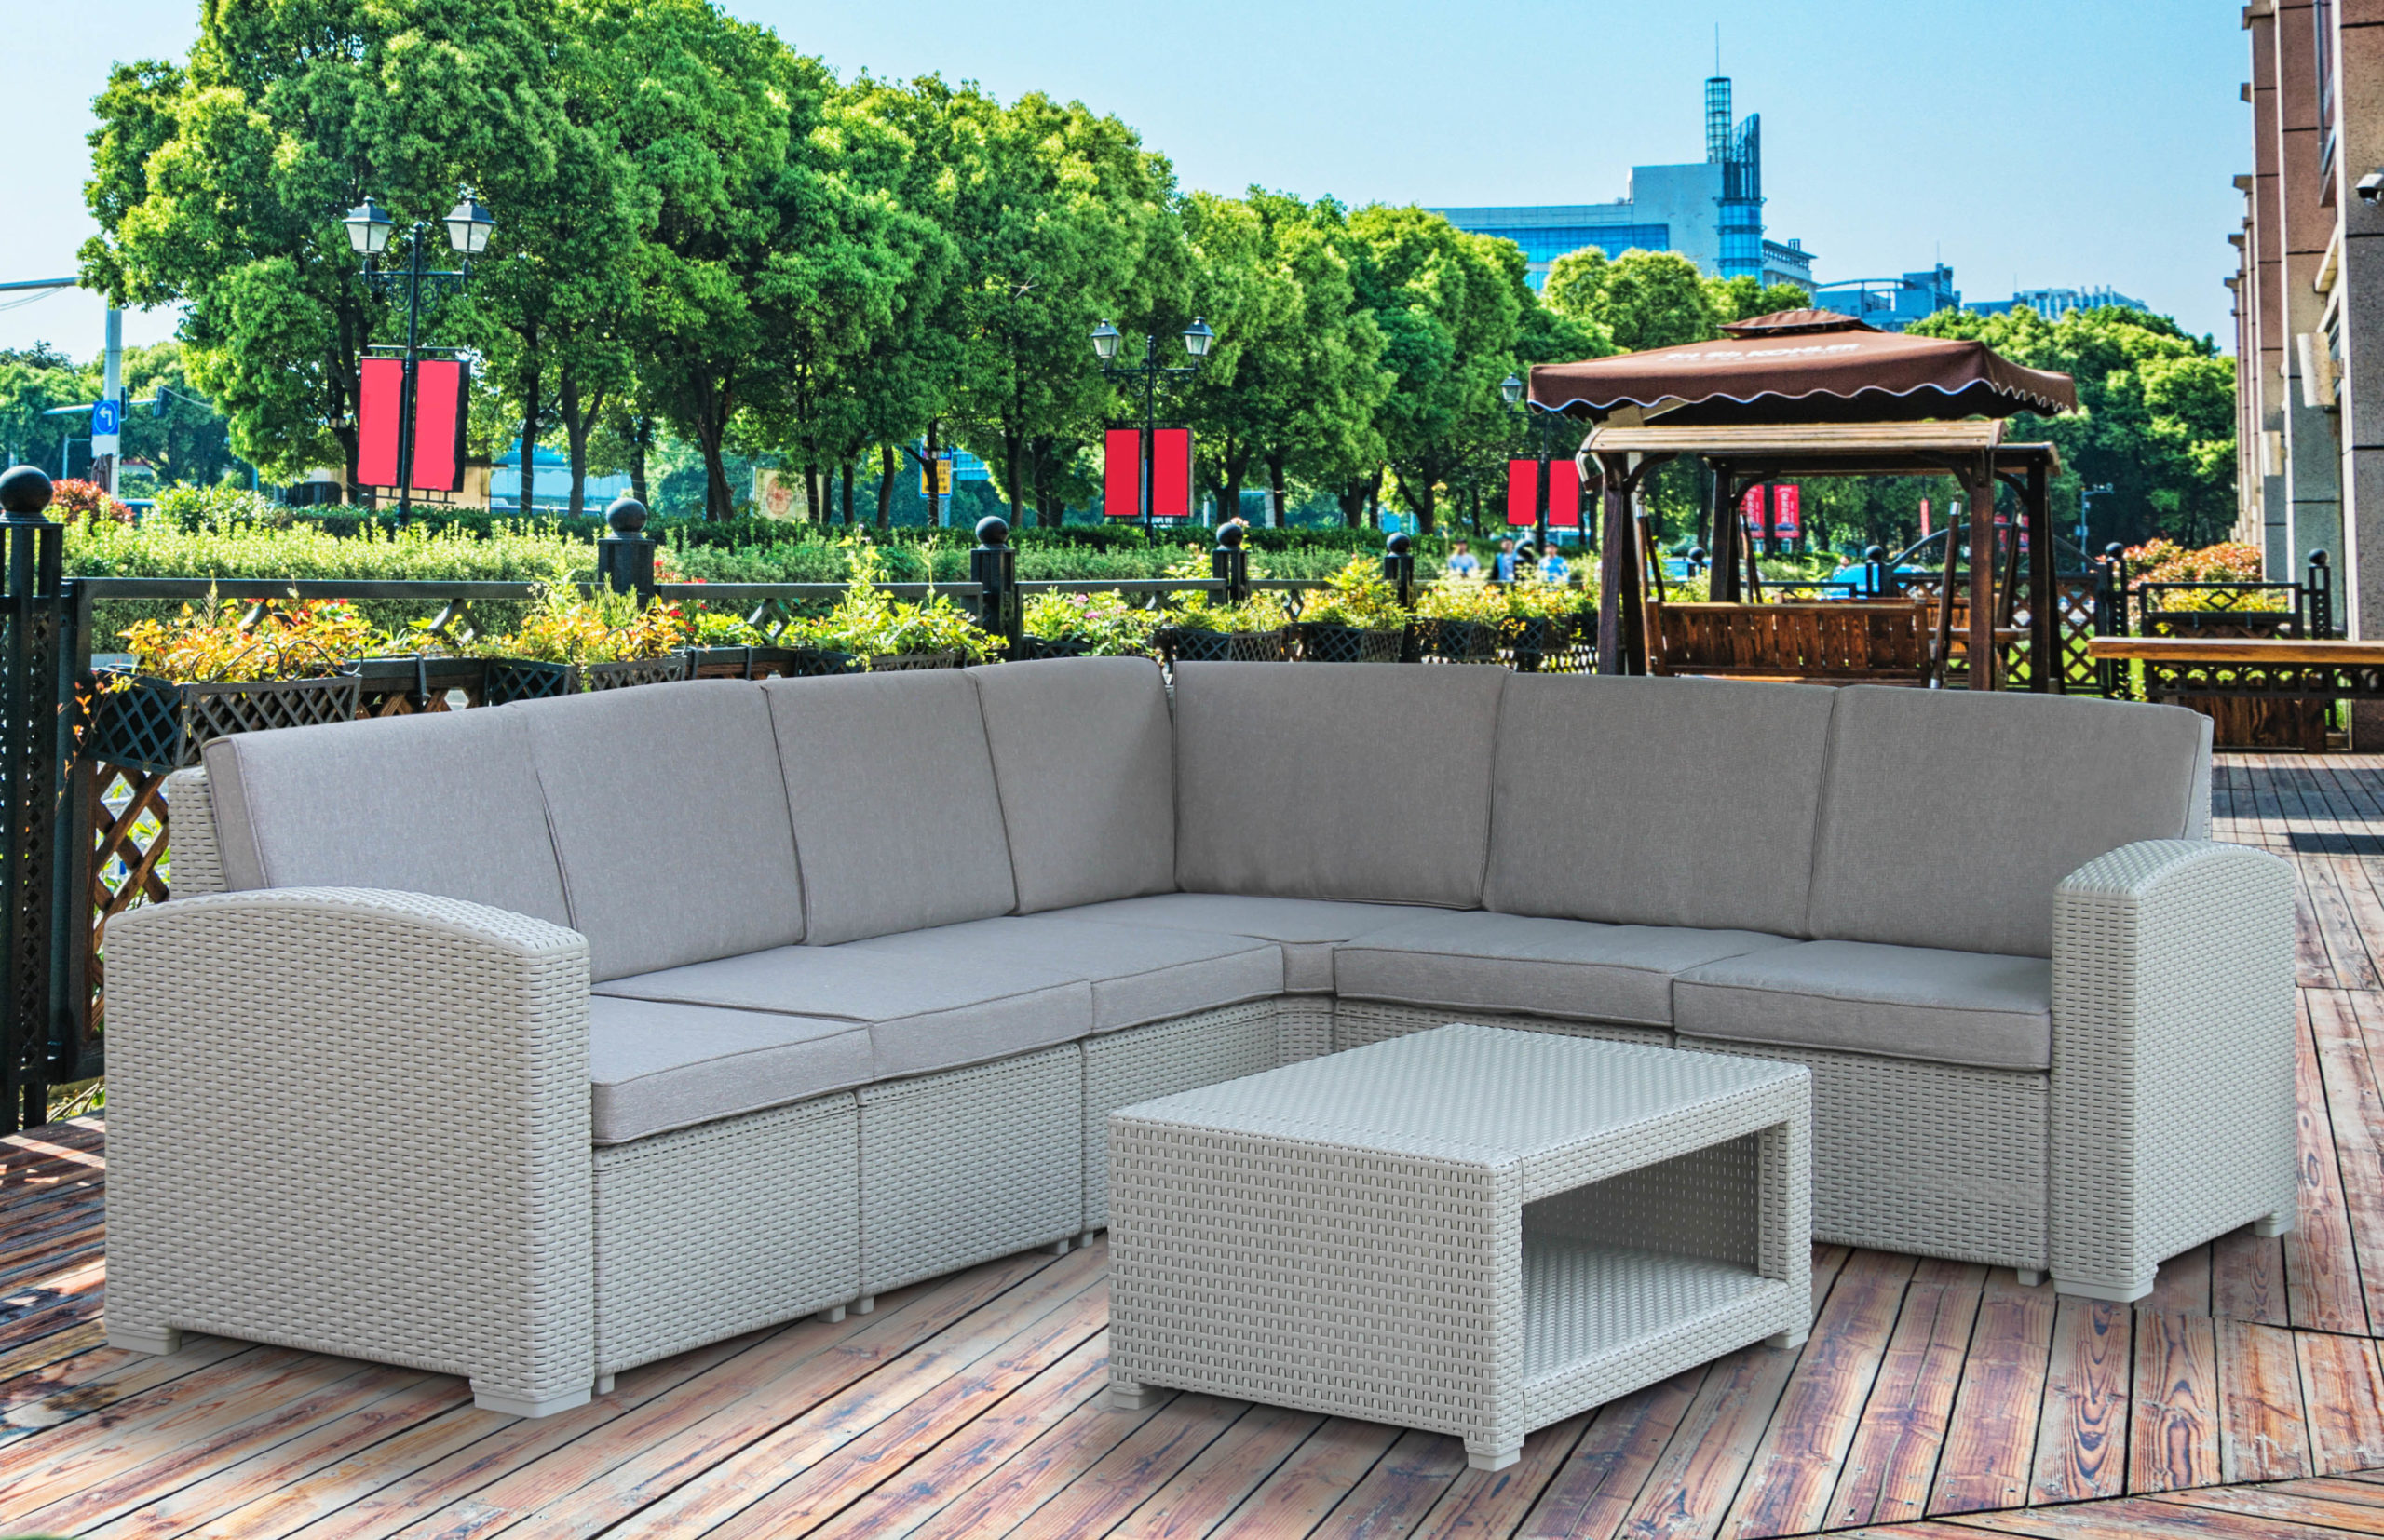 Fine Living - Sanremo Patio set - Calasca Resellers on Fine Living Patio Set id=97617